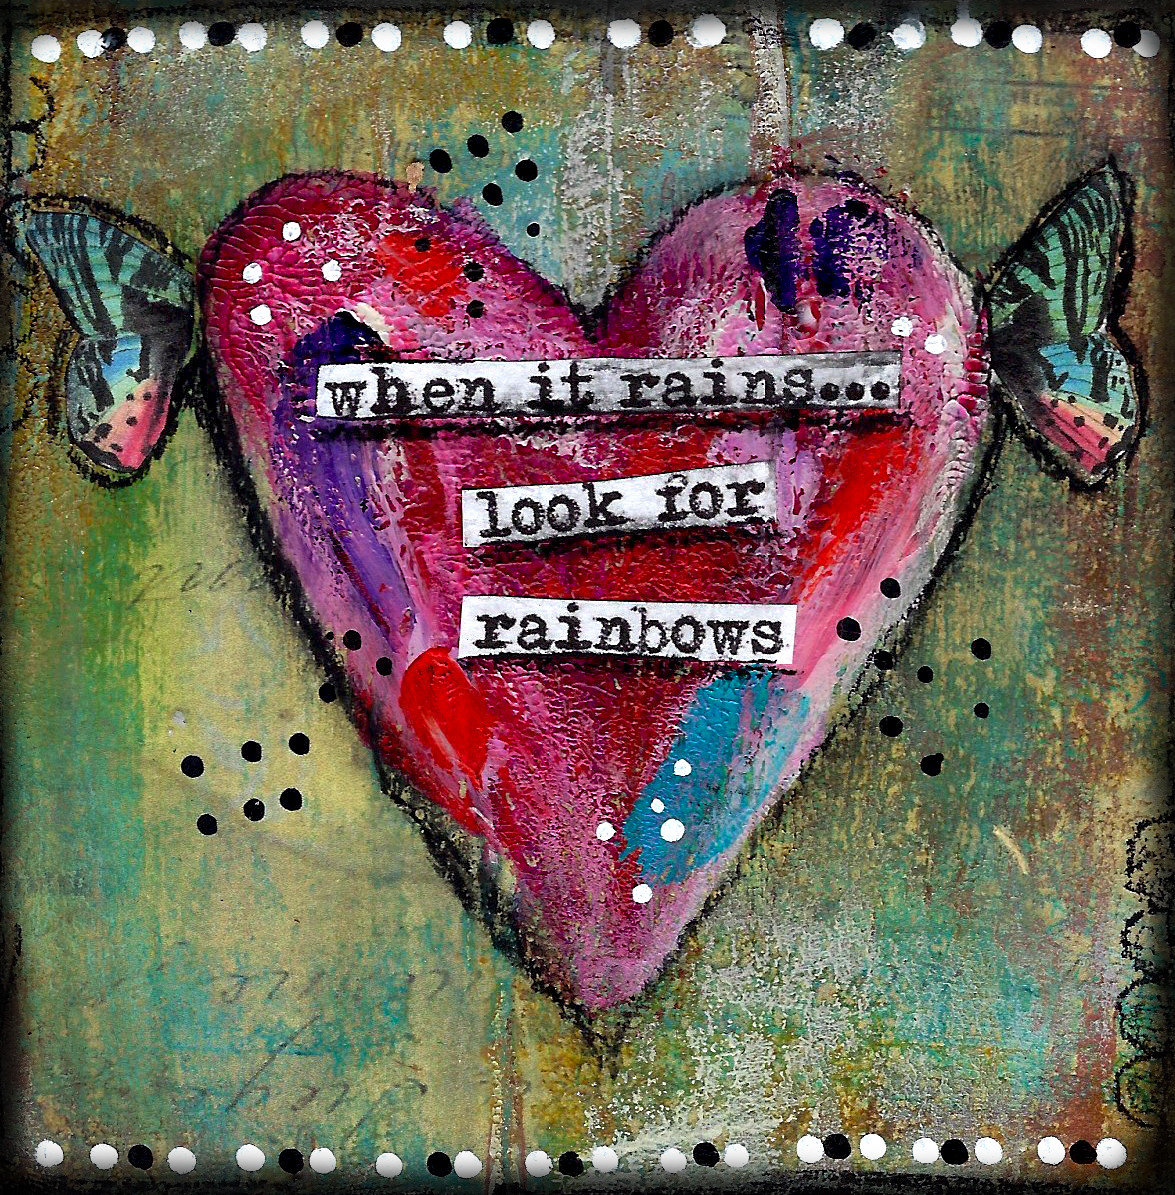 """Giving hearts """"When it rains look for Rainbows"""" 4x4"""